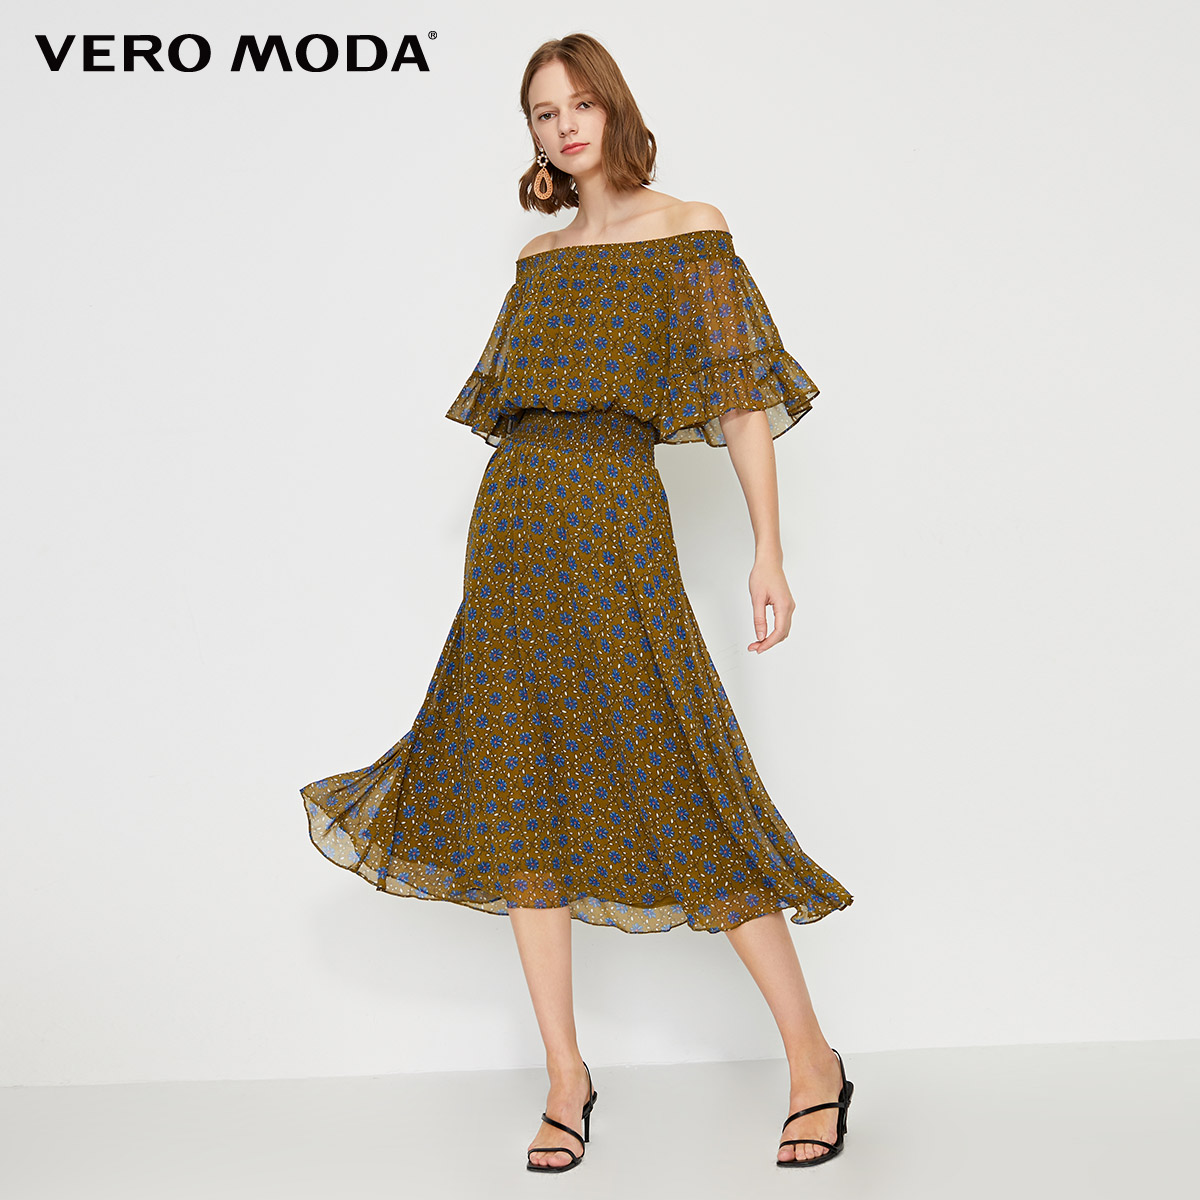 Vero Moda Women's Printed Off-the-shoulder Chiffon Dress | 31926Z554